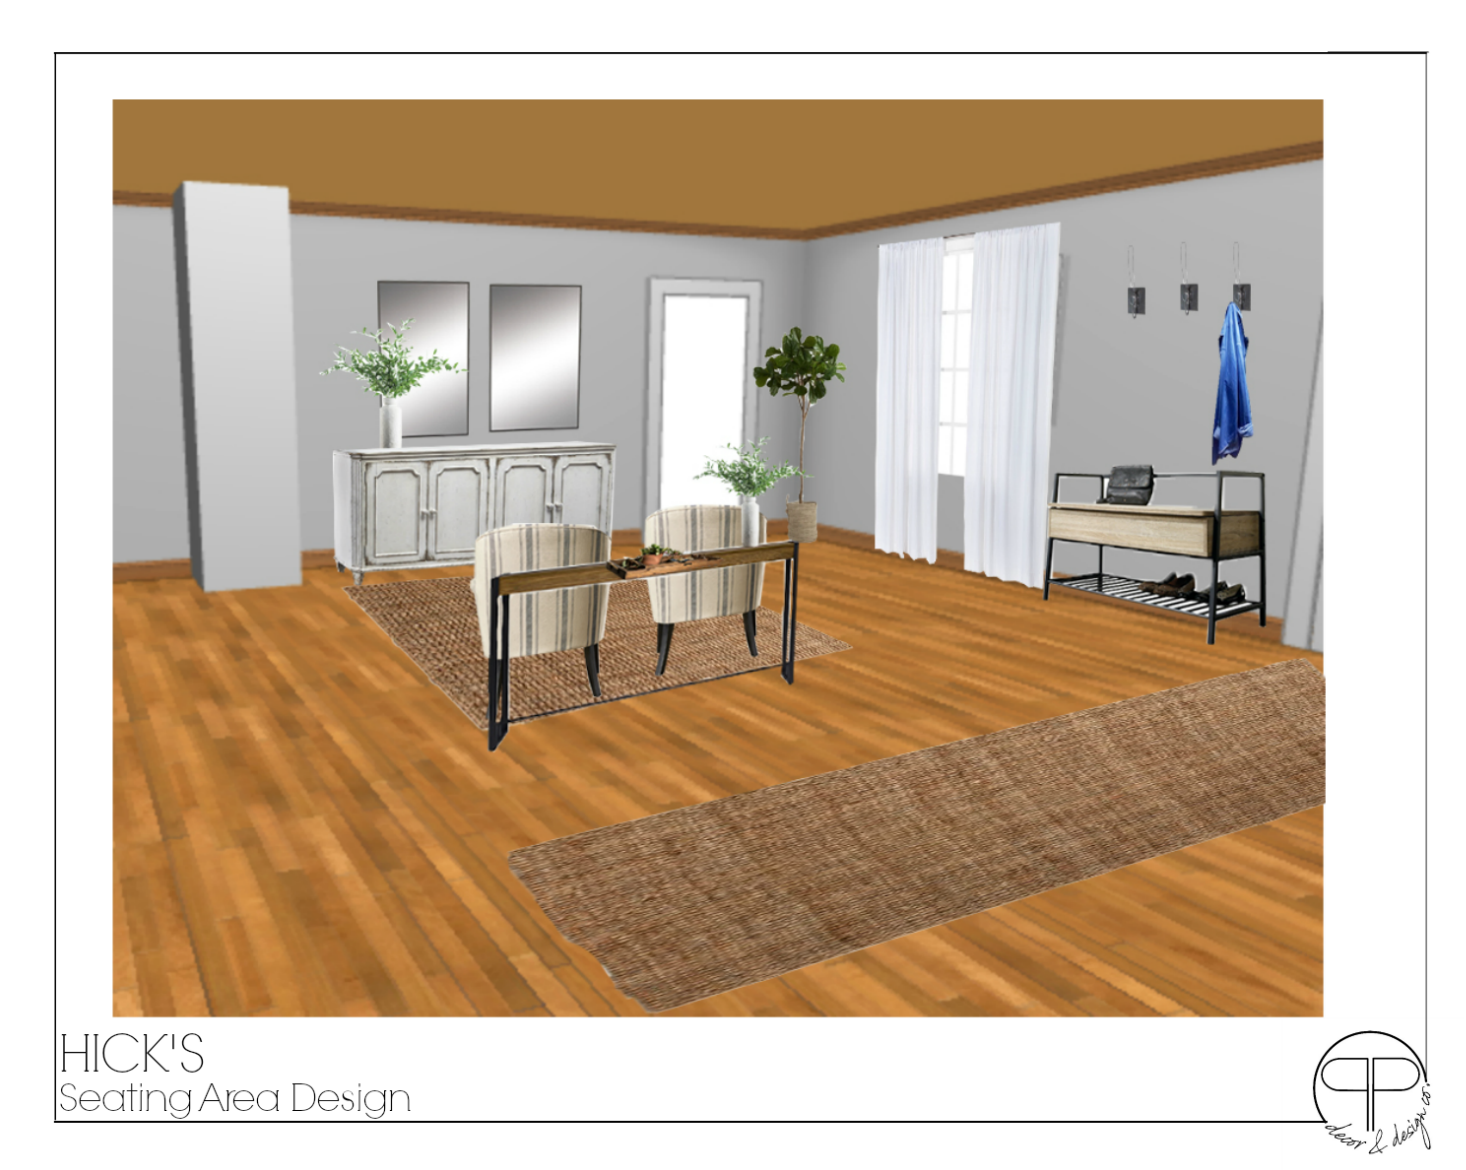 Hicks_Seating_Area_Design_1.png